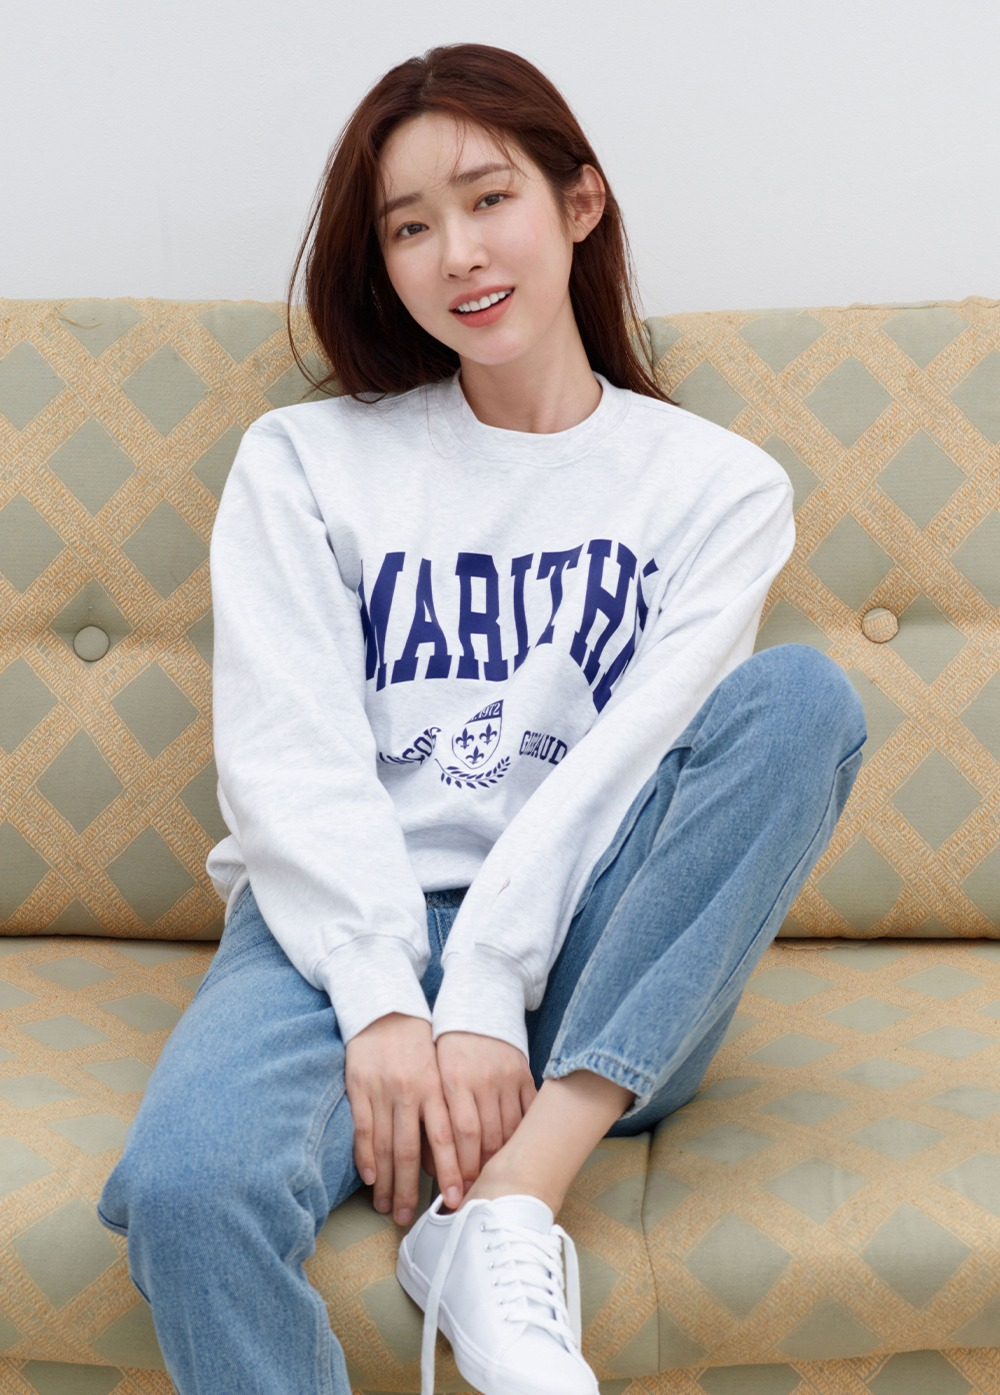 MARITHE COLLEGE SWEATSHIRT heather gray